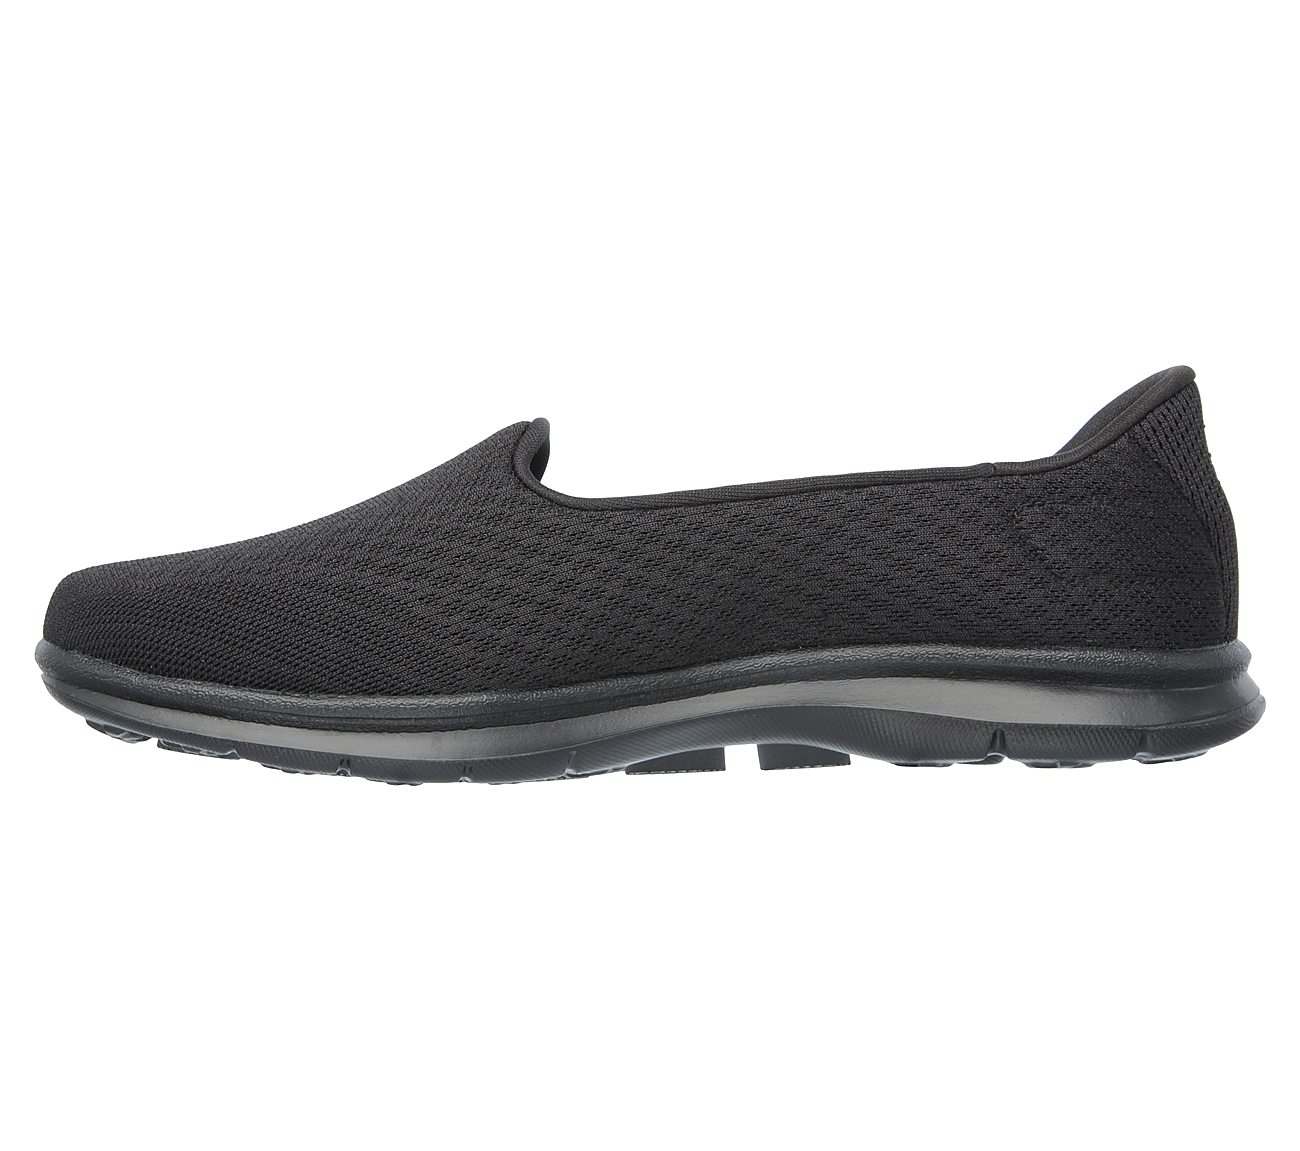 Buy SKECHERS Skechers GO STEP - Elated Skechers Performance Shoes only  $62.00